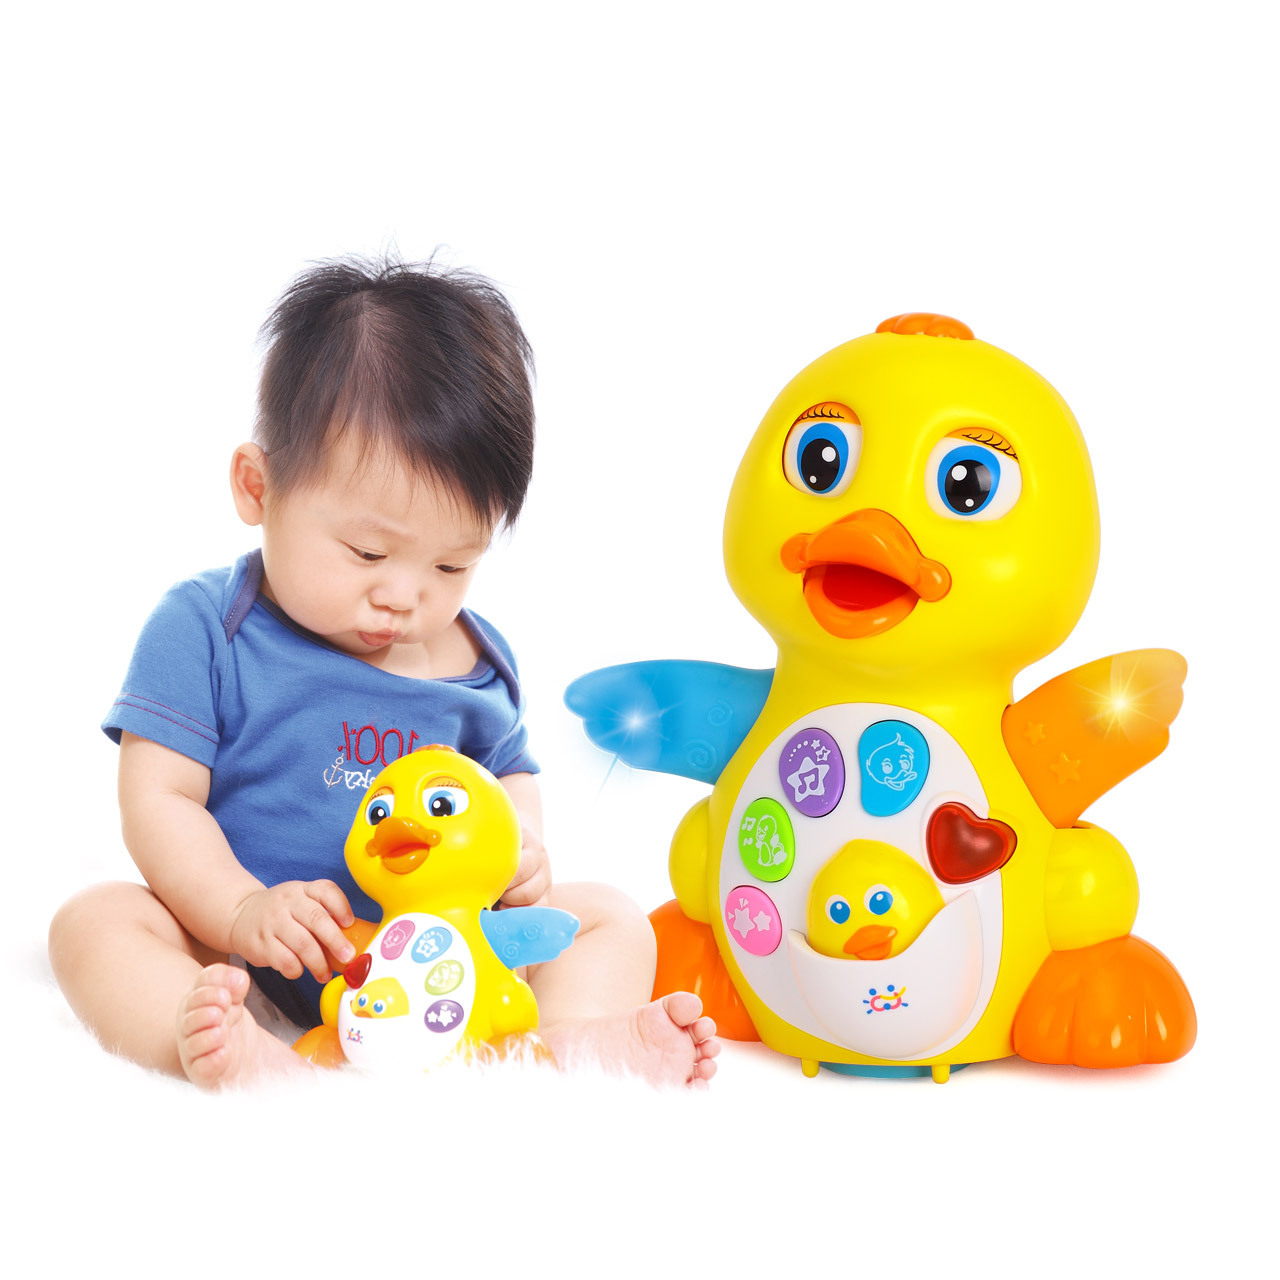 2017 New Arrival Baby Toys Eq Flapping Yellow Duck Infant  Bebe Electrical Universal Toy For Children Kids 1-3 Years Old